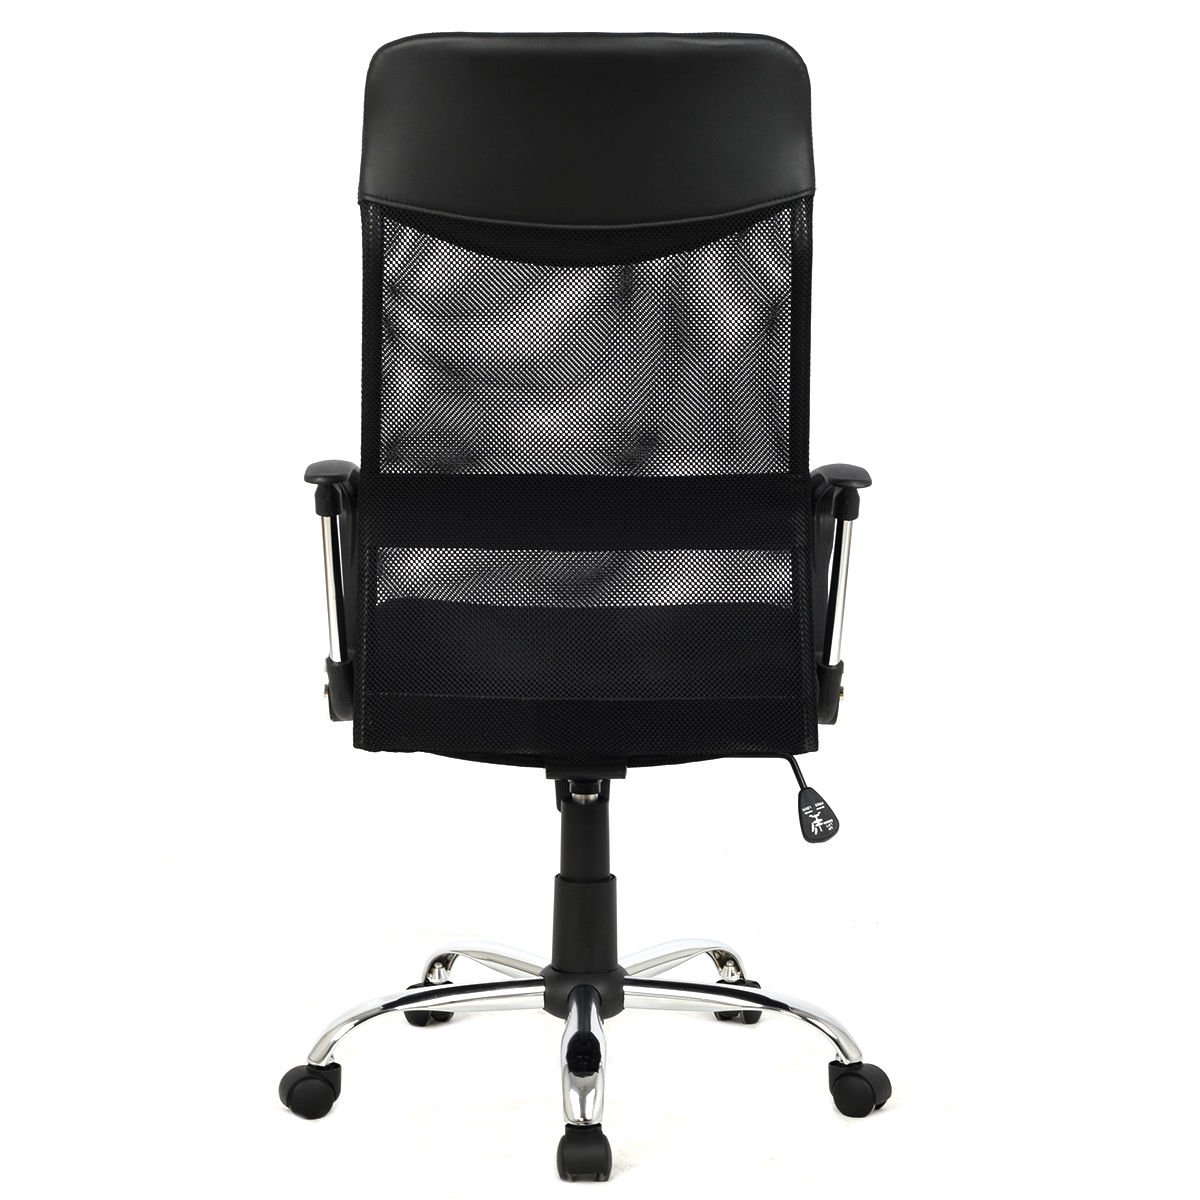 Modern Furniture 8074-BK High-Back Swivel Ergonomic Mesh/PVC Seat Desk Task Computer Swivel Lumbar Support Executive Office Chair with Seat Height Adjustment by mck (Image #4)